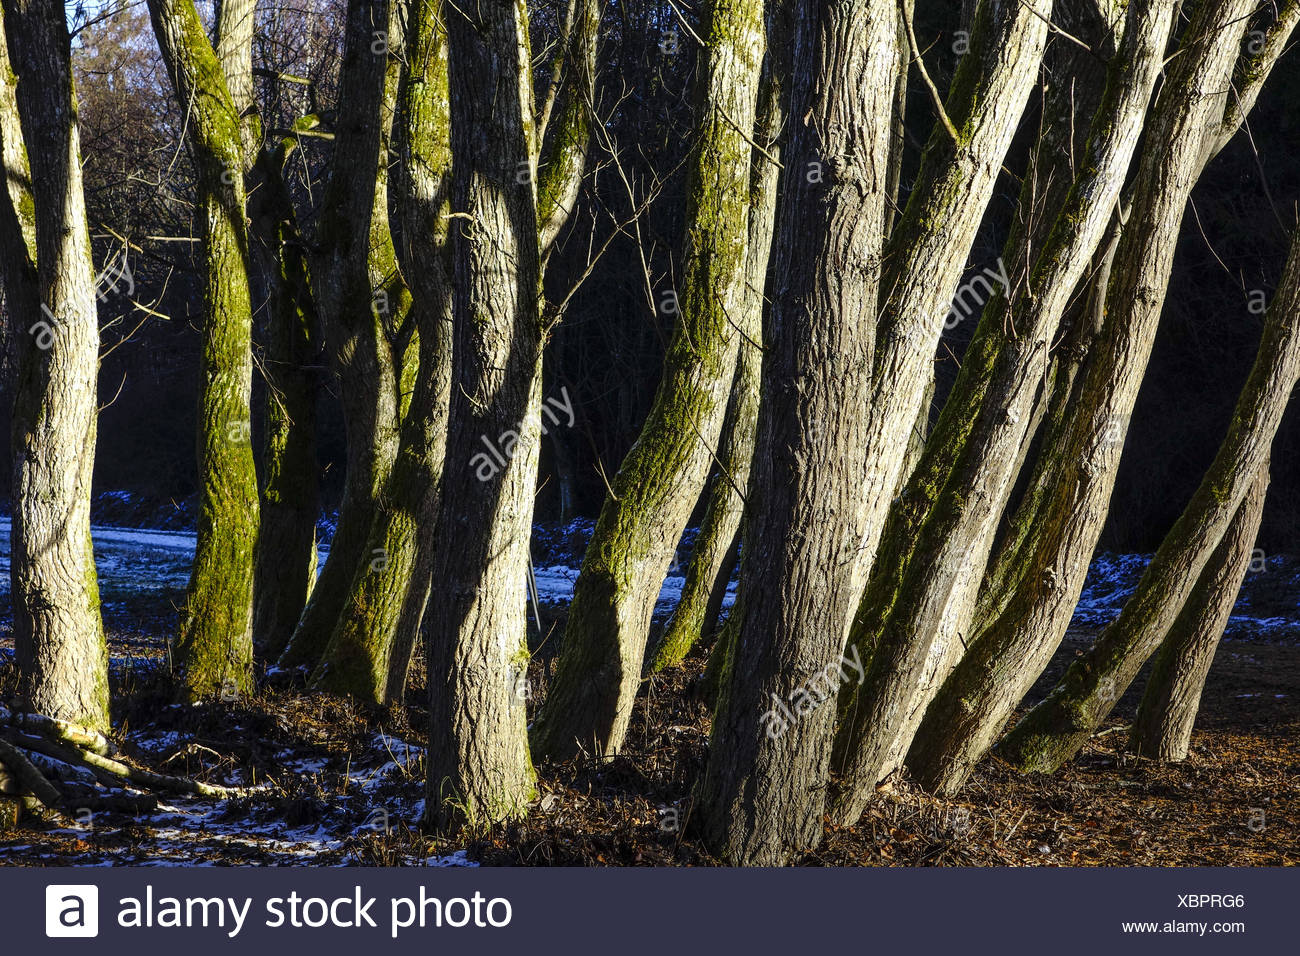 Eine Gruppe Bäume ohne Blätter im Winter, Spätherbst, A group of trees without leaves in winter, late autumn, Winter, Autumn, Tr - Stock Image